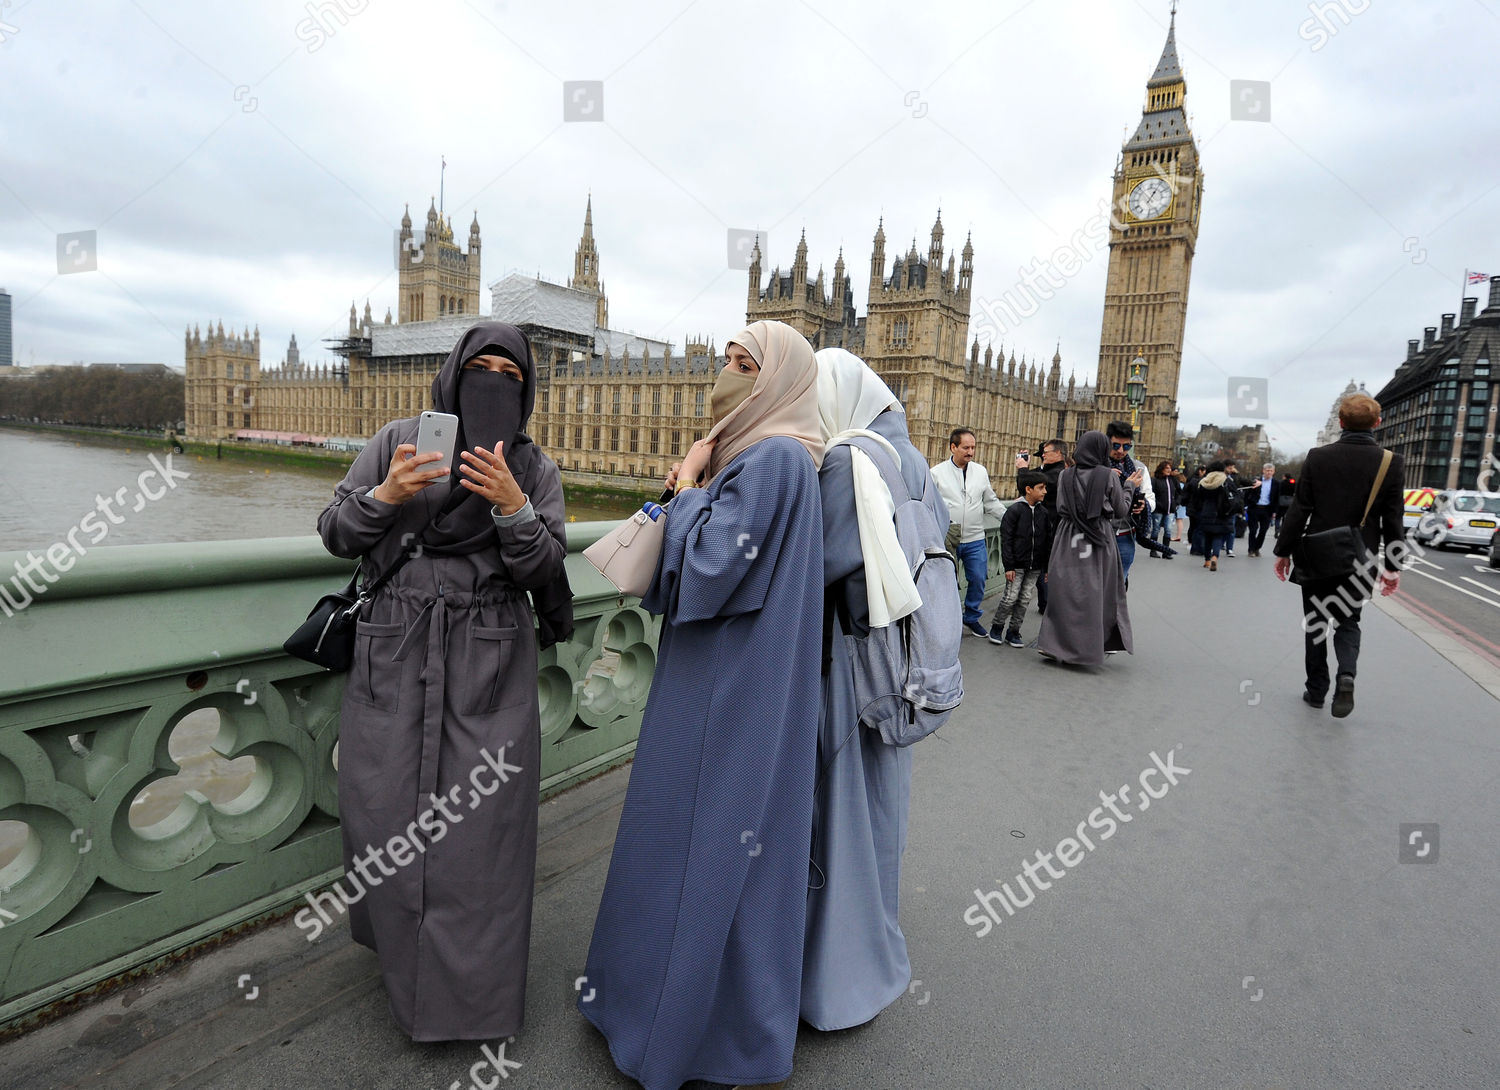 Bilderesultat for niqab london